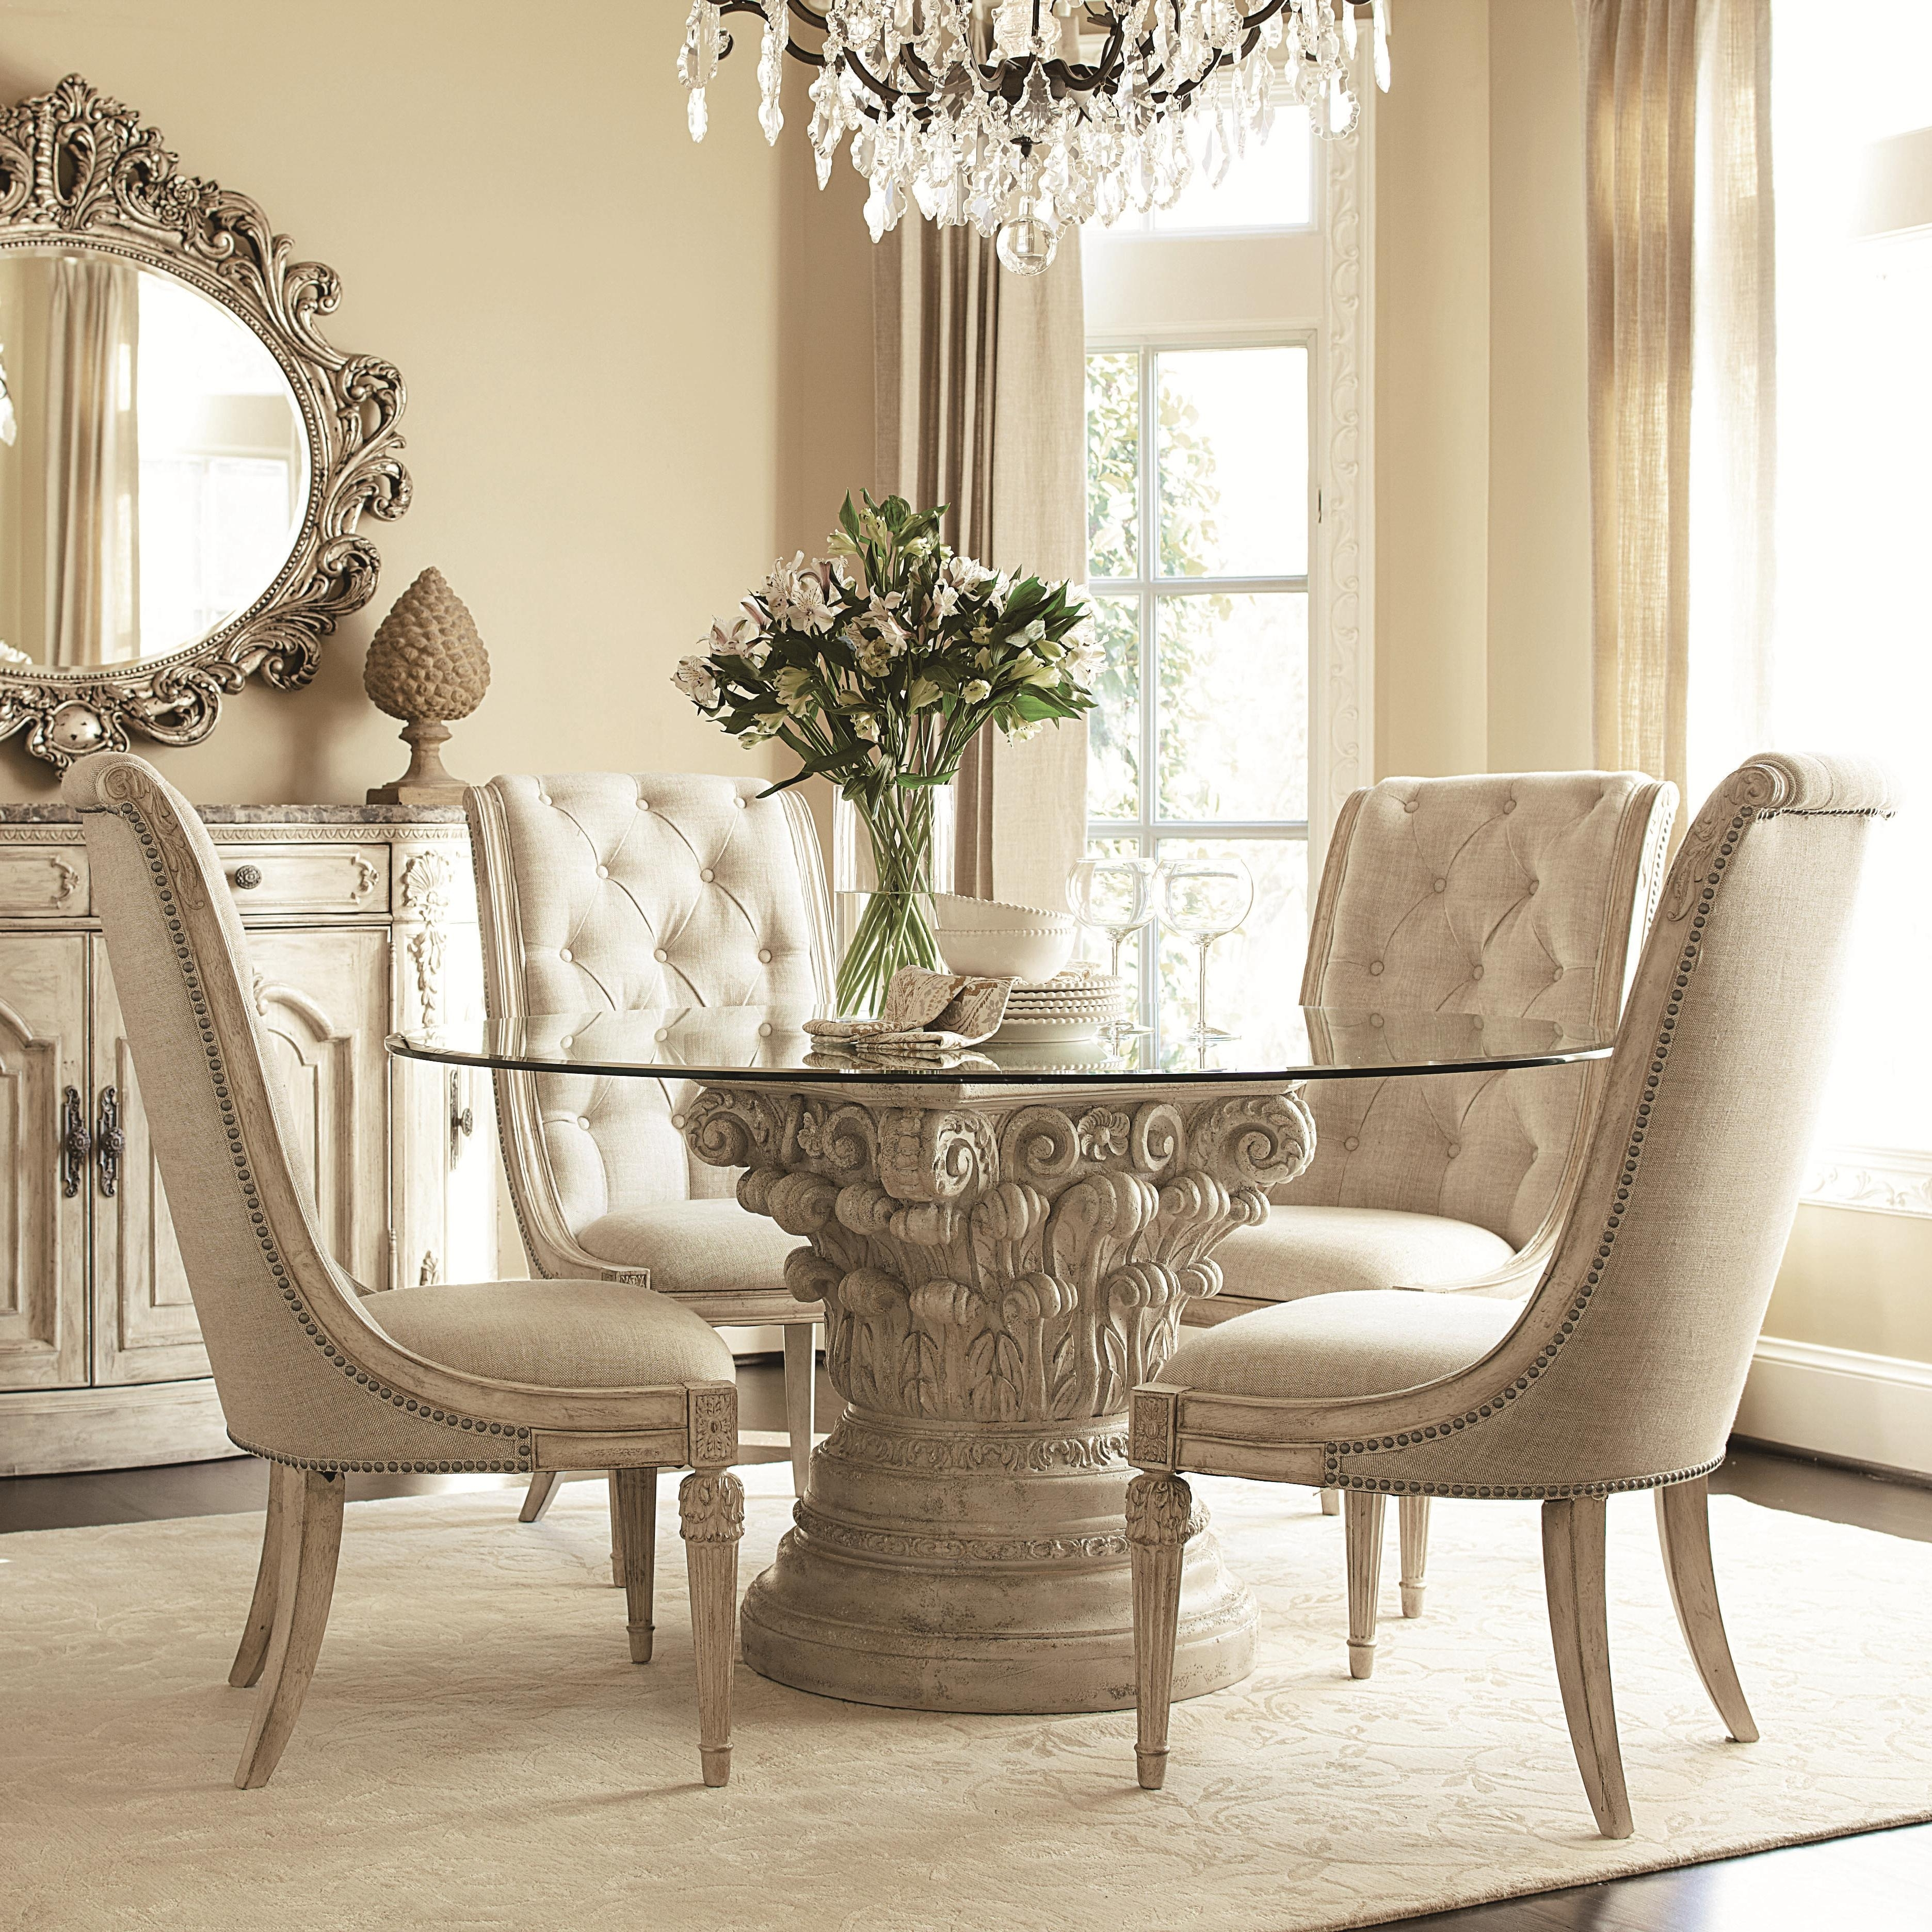 American Drew Jessica Mcclintock Home – The Boutique Collection 5 Intended For Best And Newest Caira 7 Piece Rectangular Dining Sets With Diamond Back Side Chairs (View 18 of 20)